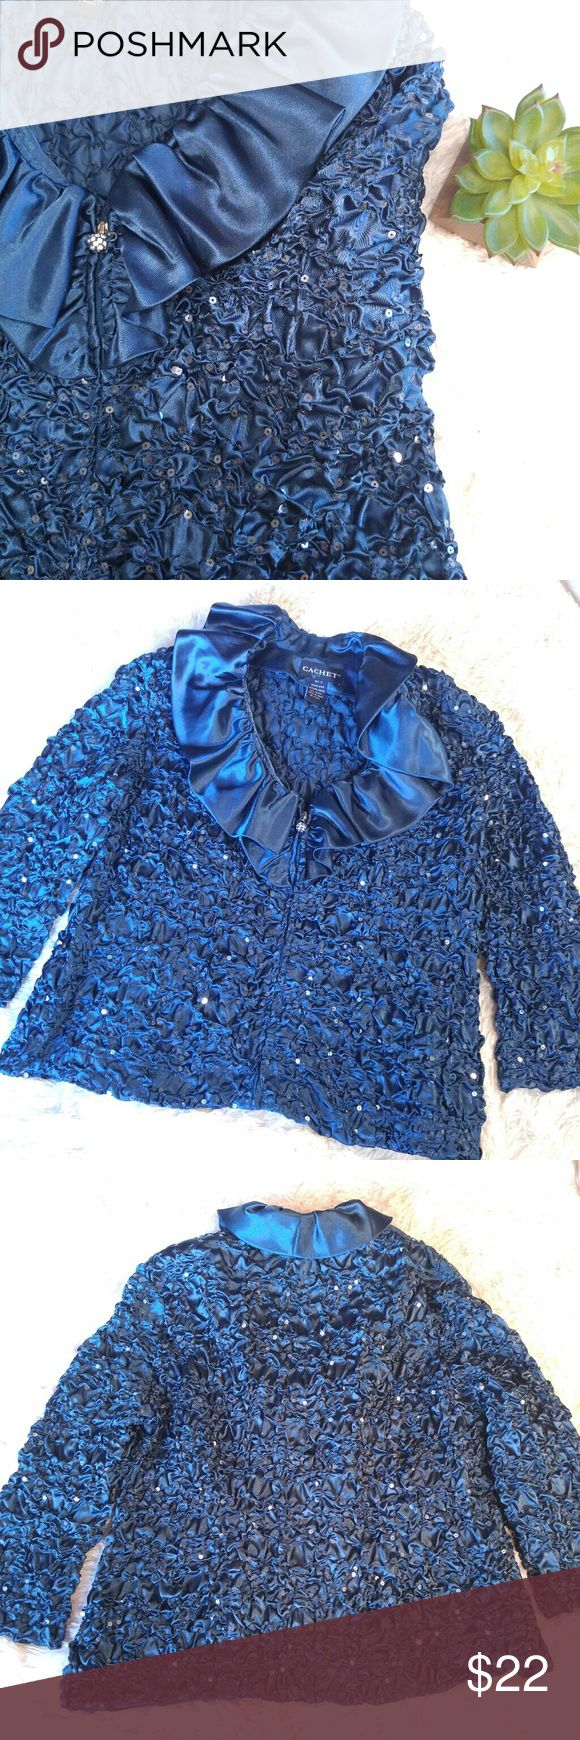 """Cachet Teal Sequined Pucker Satin Jacket Beautiful formal jacket with ruffled billowing neck, puckered polyester satin, and sparkling sequins. Zips down front and has three quarter sleeves and a rhinestone zipper pull. The color is hard to photograph, but it is a true blue green teal.   Size XL. 100% polyester. Some stretch because of the puckering. 42"""" bust, 24"""" long.   Has mark on tag, but otherwise good preowned condition. Very unique standout jacket. Cachet Jackets & Coats"""